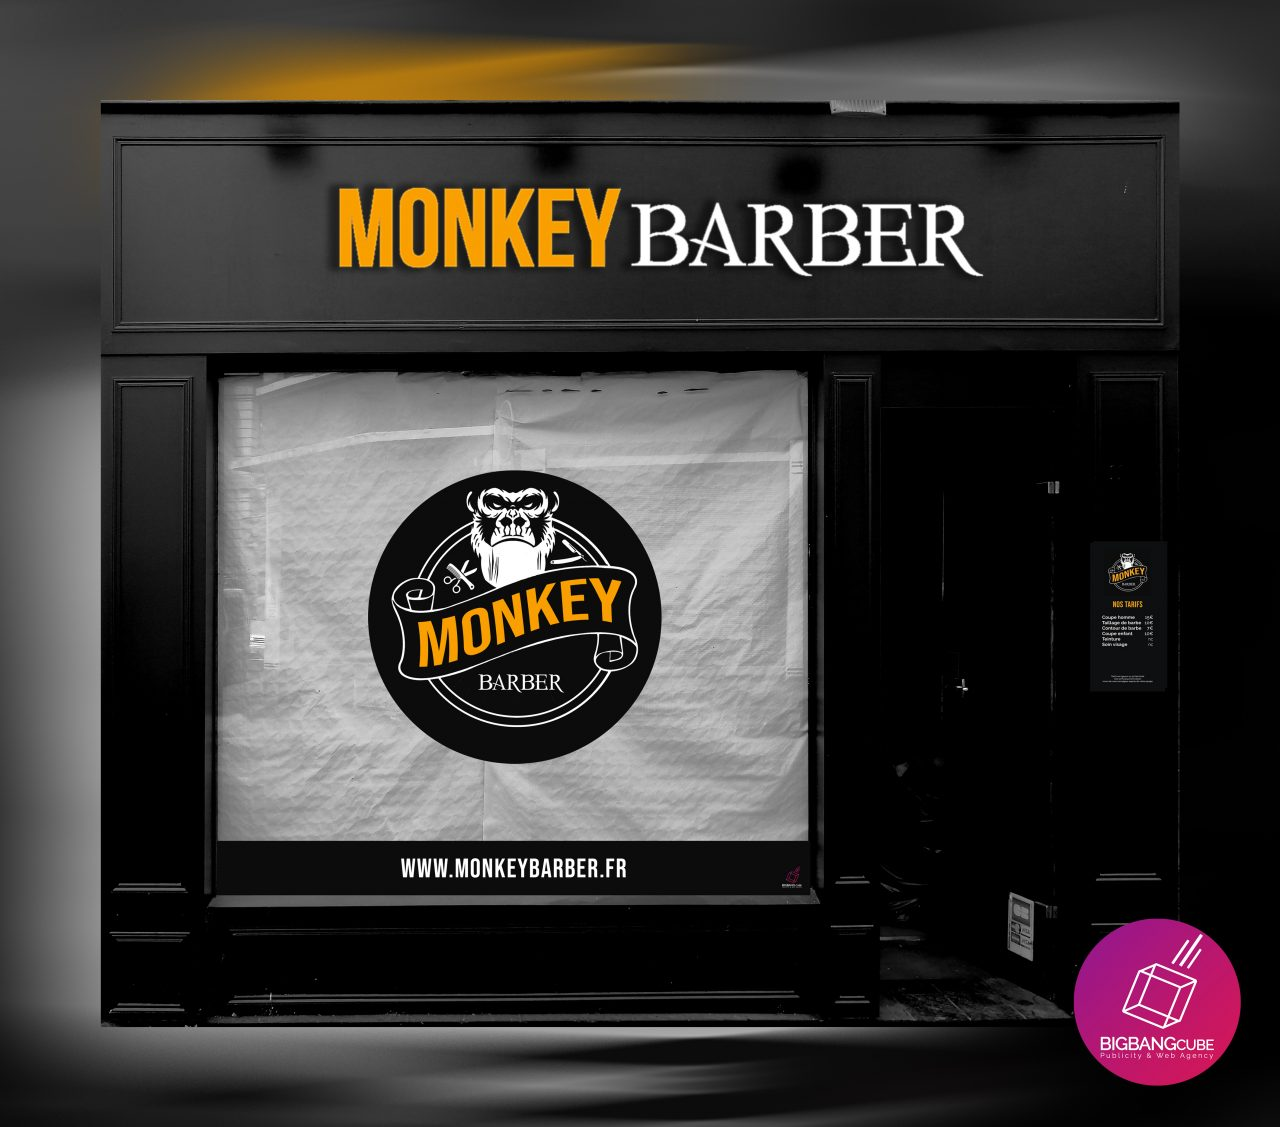 Monkey Barber Arras